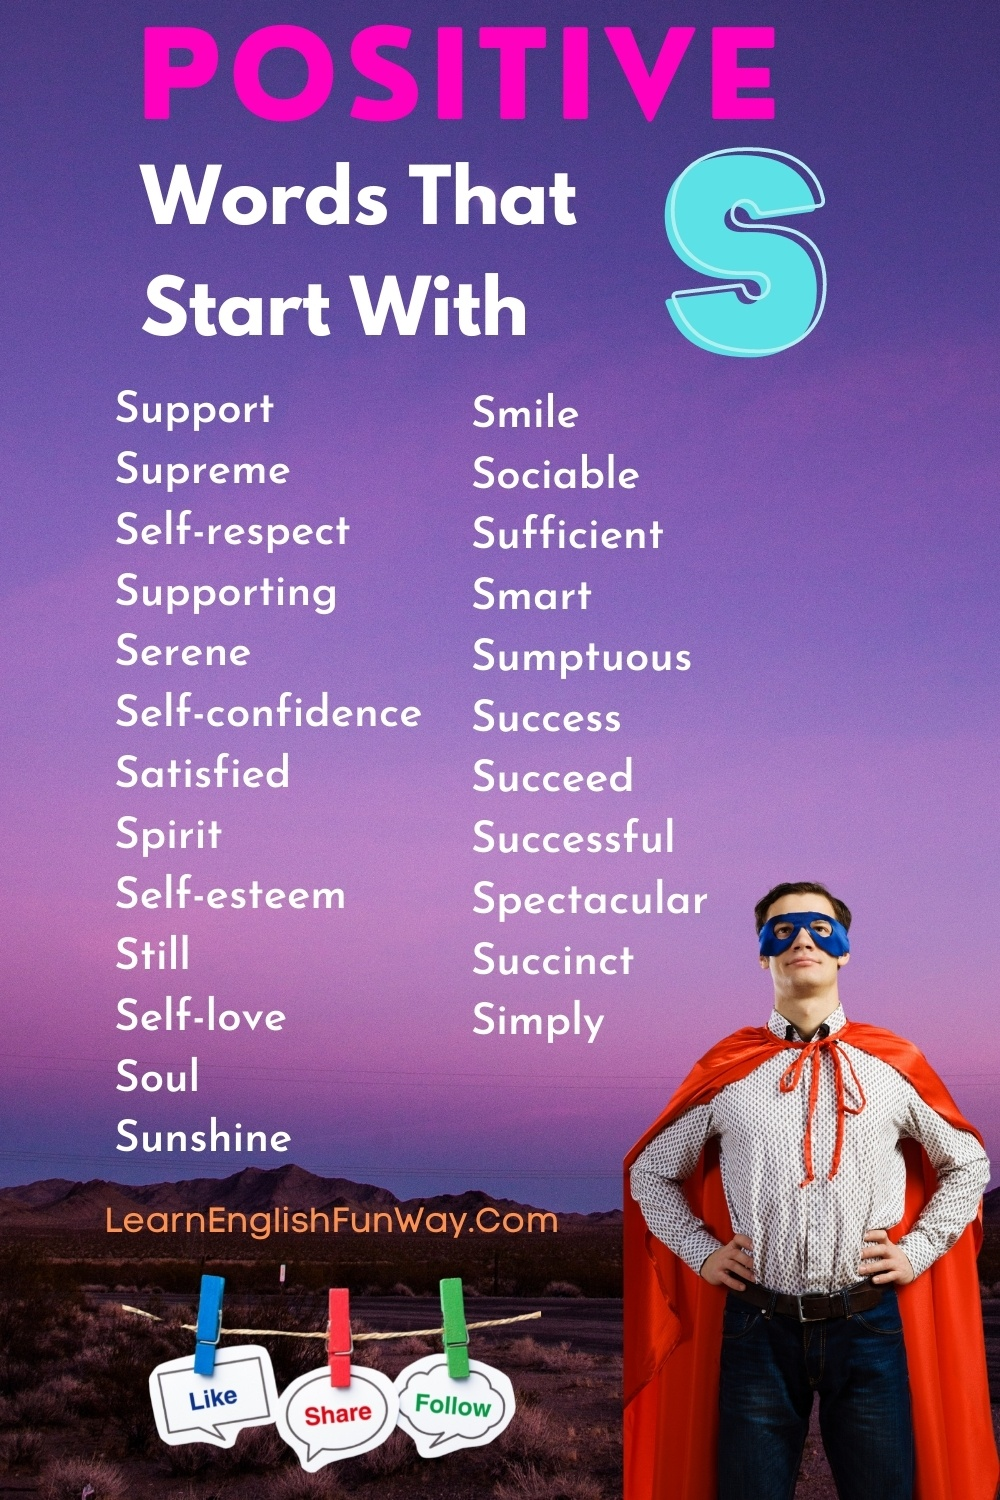 list of positive words that start with S - Positive Words That Start With S